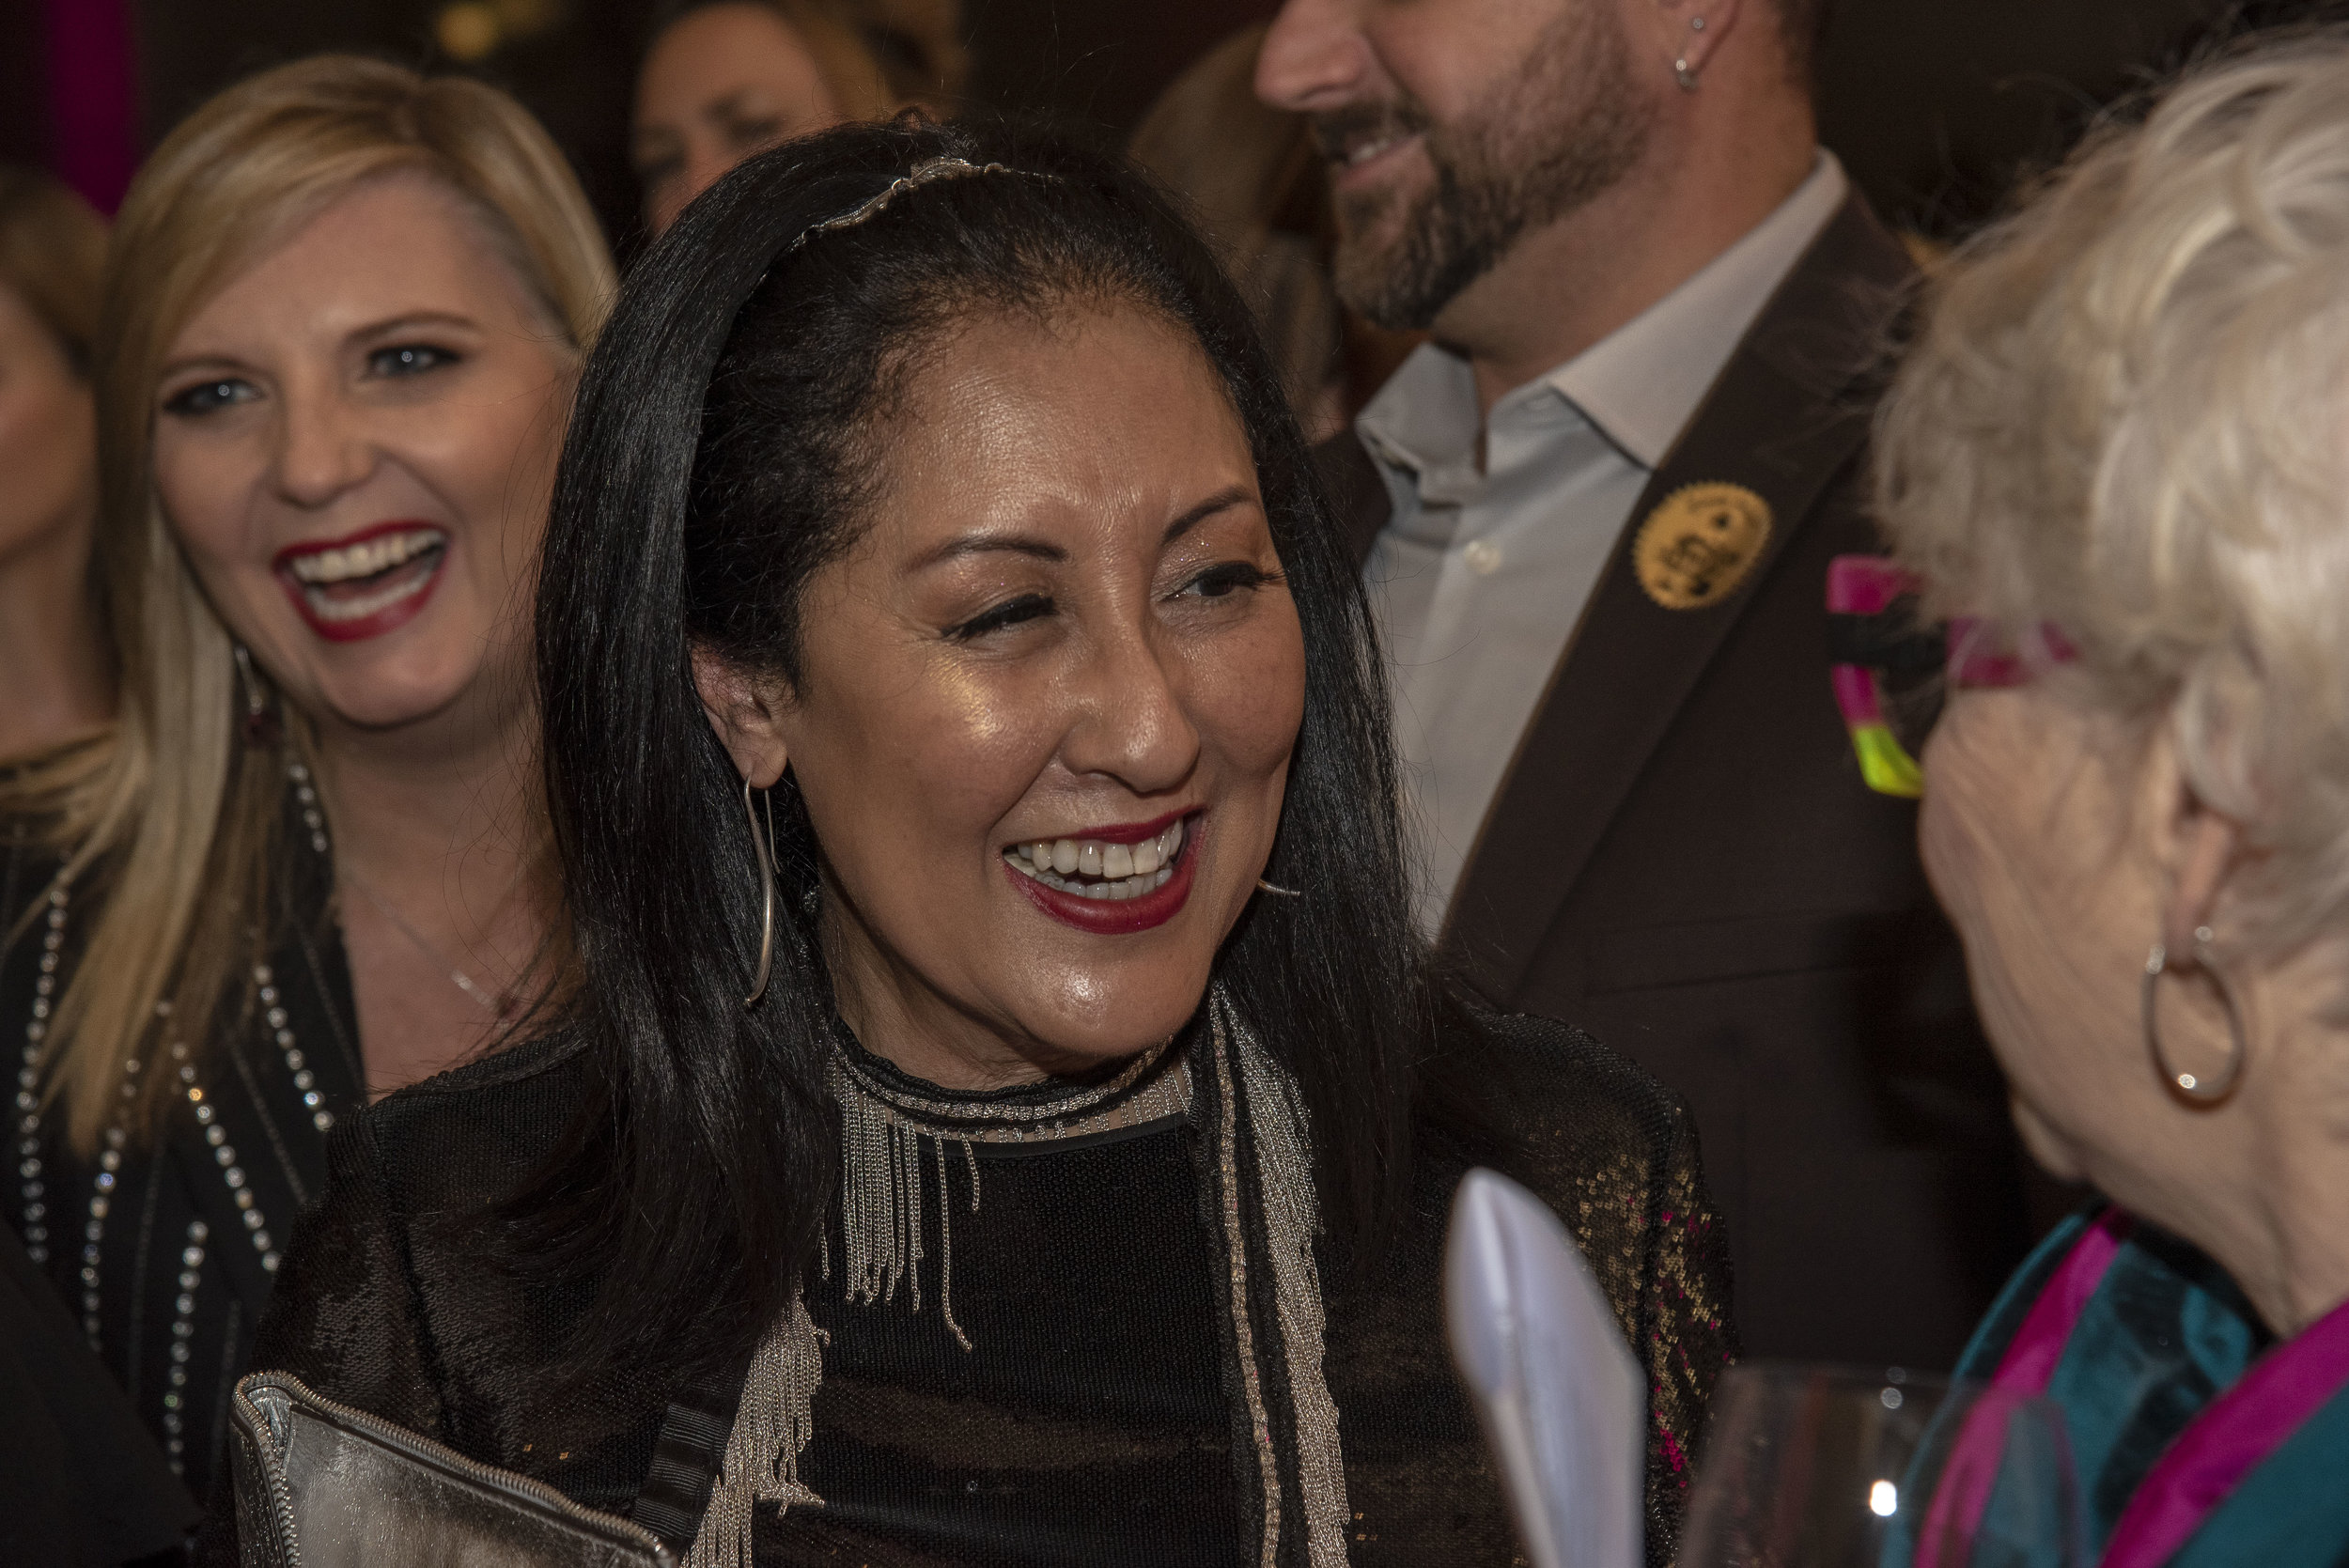 Loretta Chin (past president of CAFTCAD and current Bespoke editor) with Leslie Kavanagh behind her